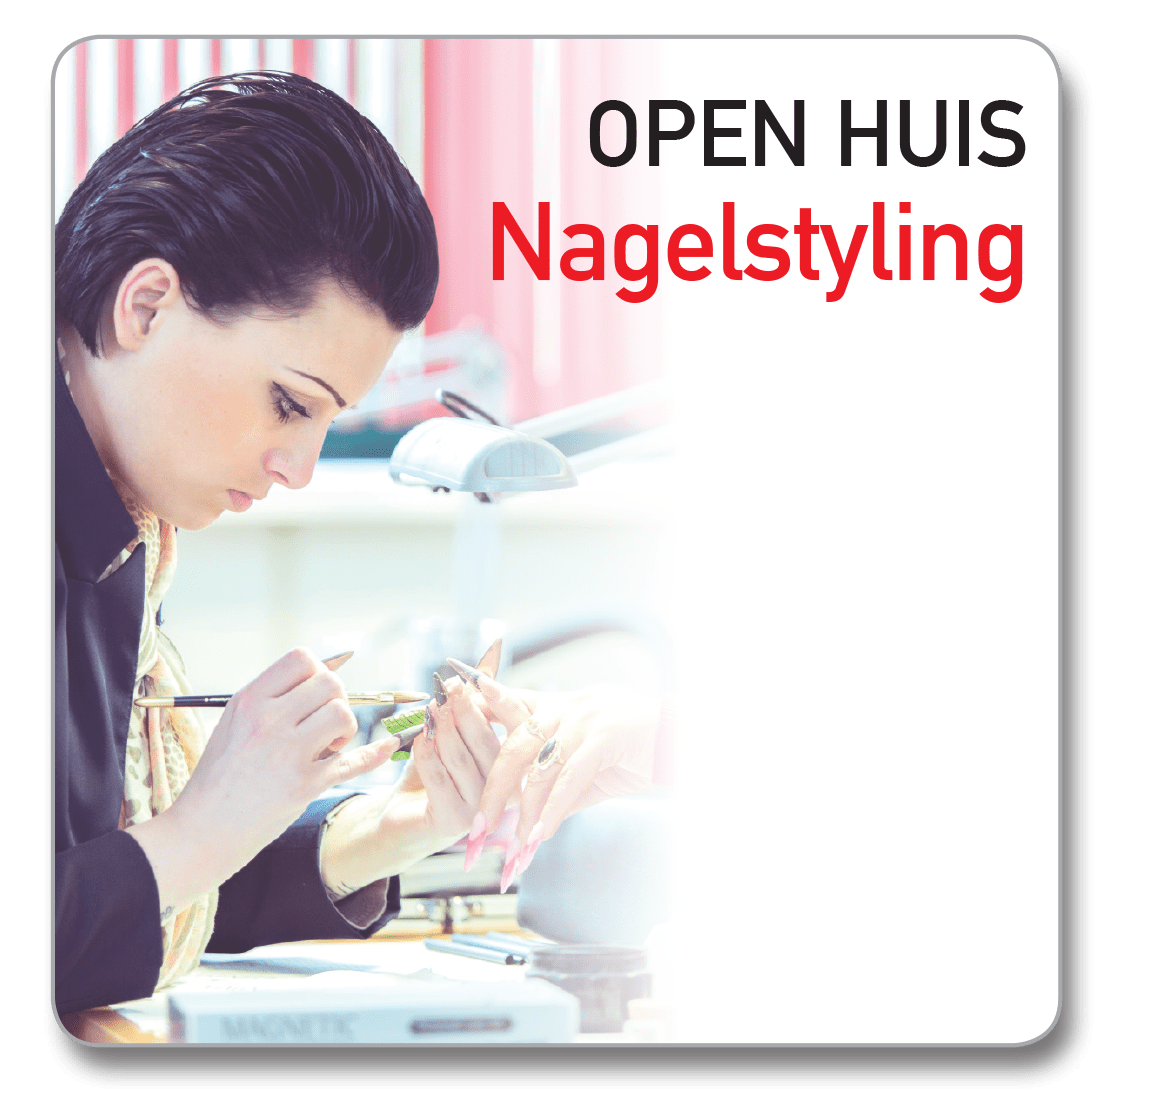 Open Huis Nagelstyling